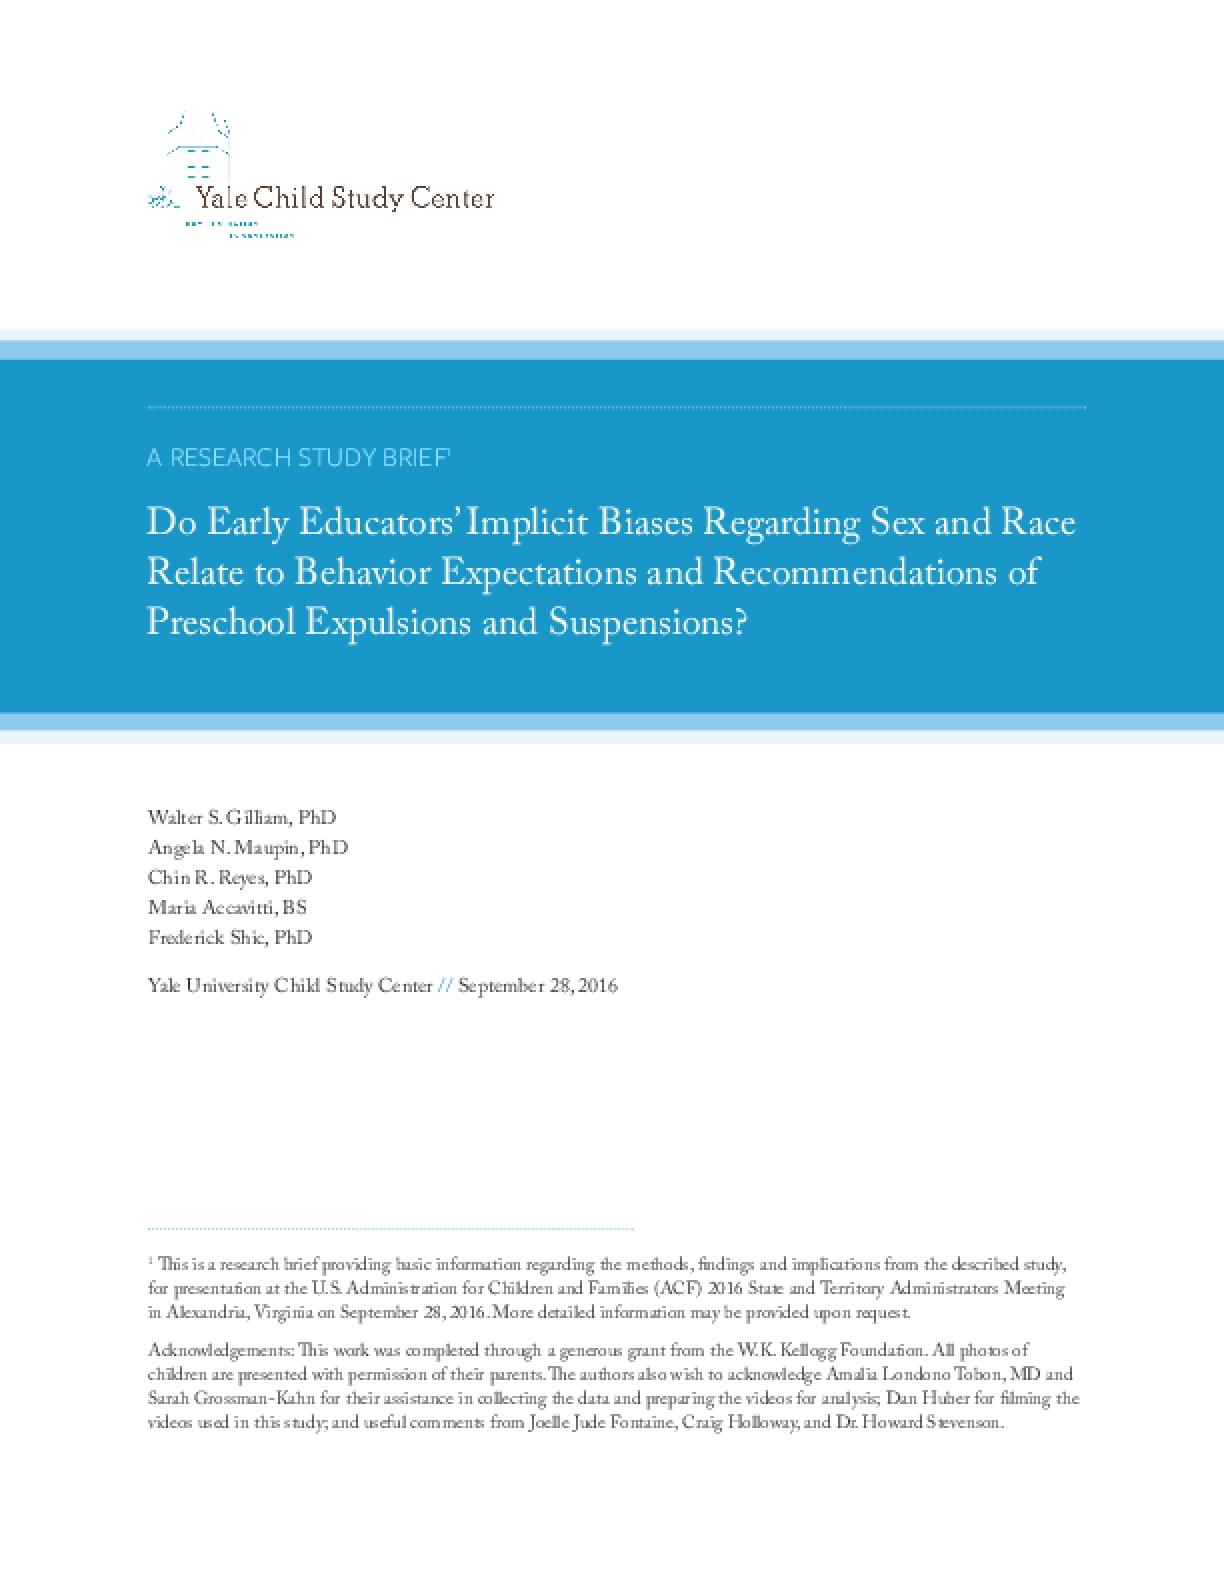 Do Early Educators' Implicit Biases Regarding Sex and Race Relate to Behavior Expectations and Recommendations of Preschool Expulsions and Suspensions?